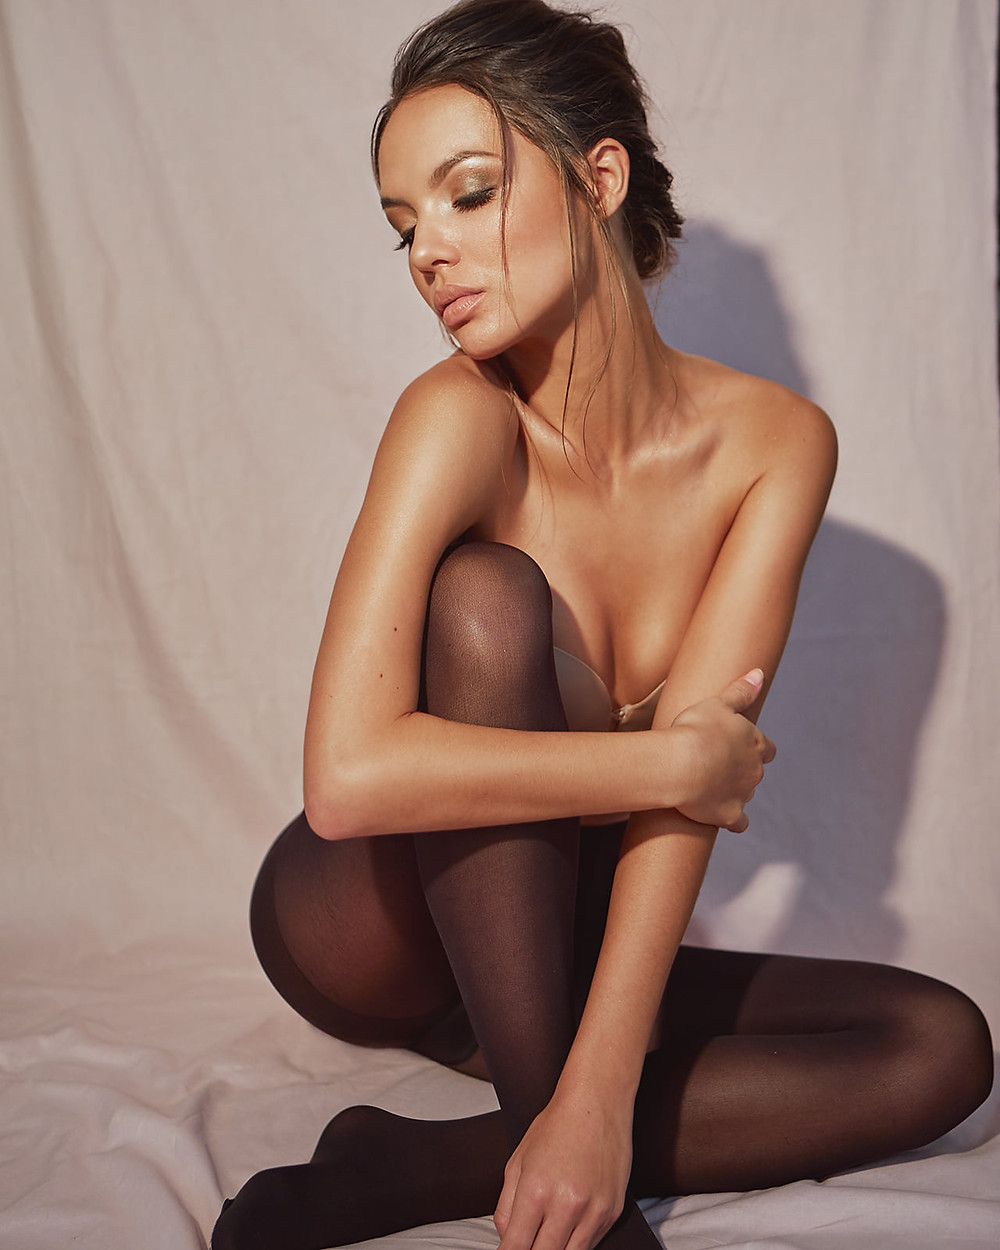 The Beautiful Bianca Vierra looks like Emily Ratajkowski with pink lips and wearing a nude strapless bra and black tights for a beauty photoshoot with Patrick Patton Photography.